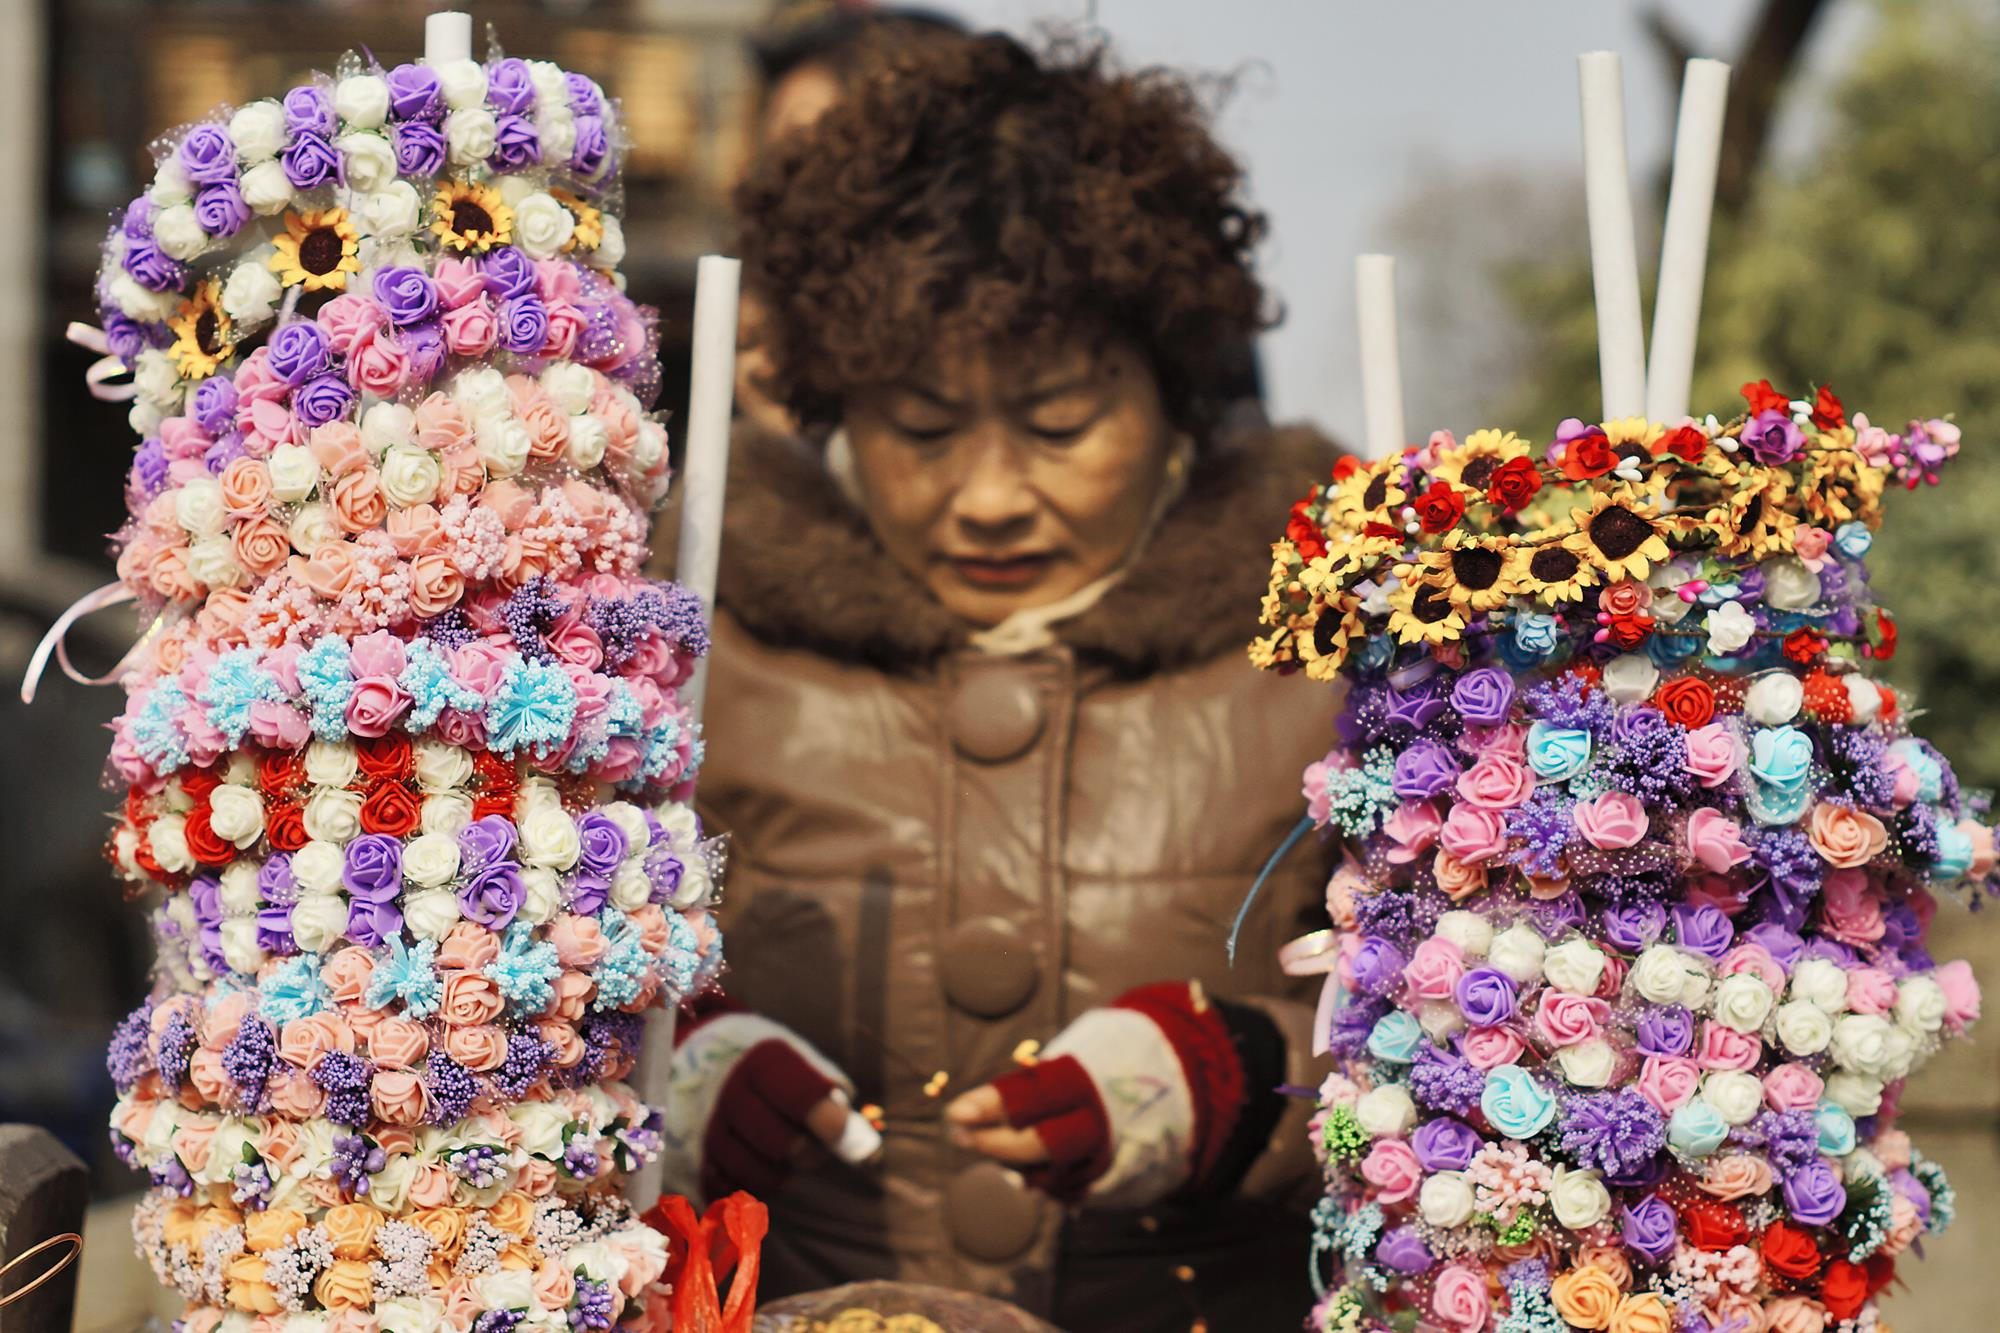 chinese street vendor selling flowers